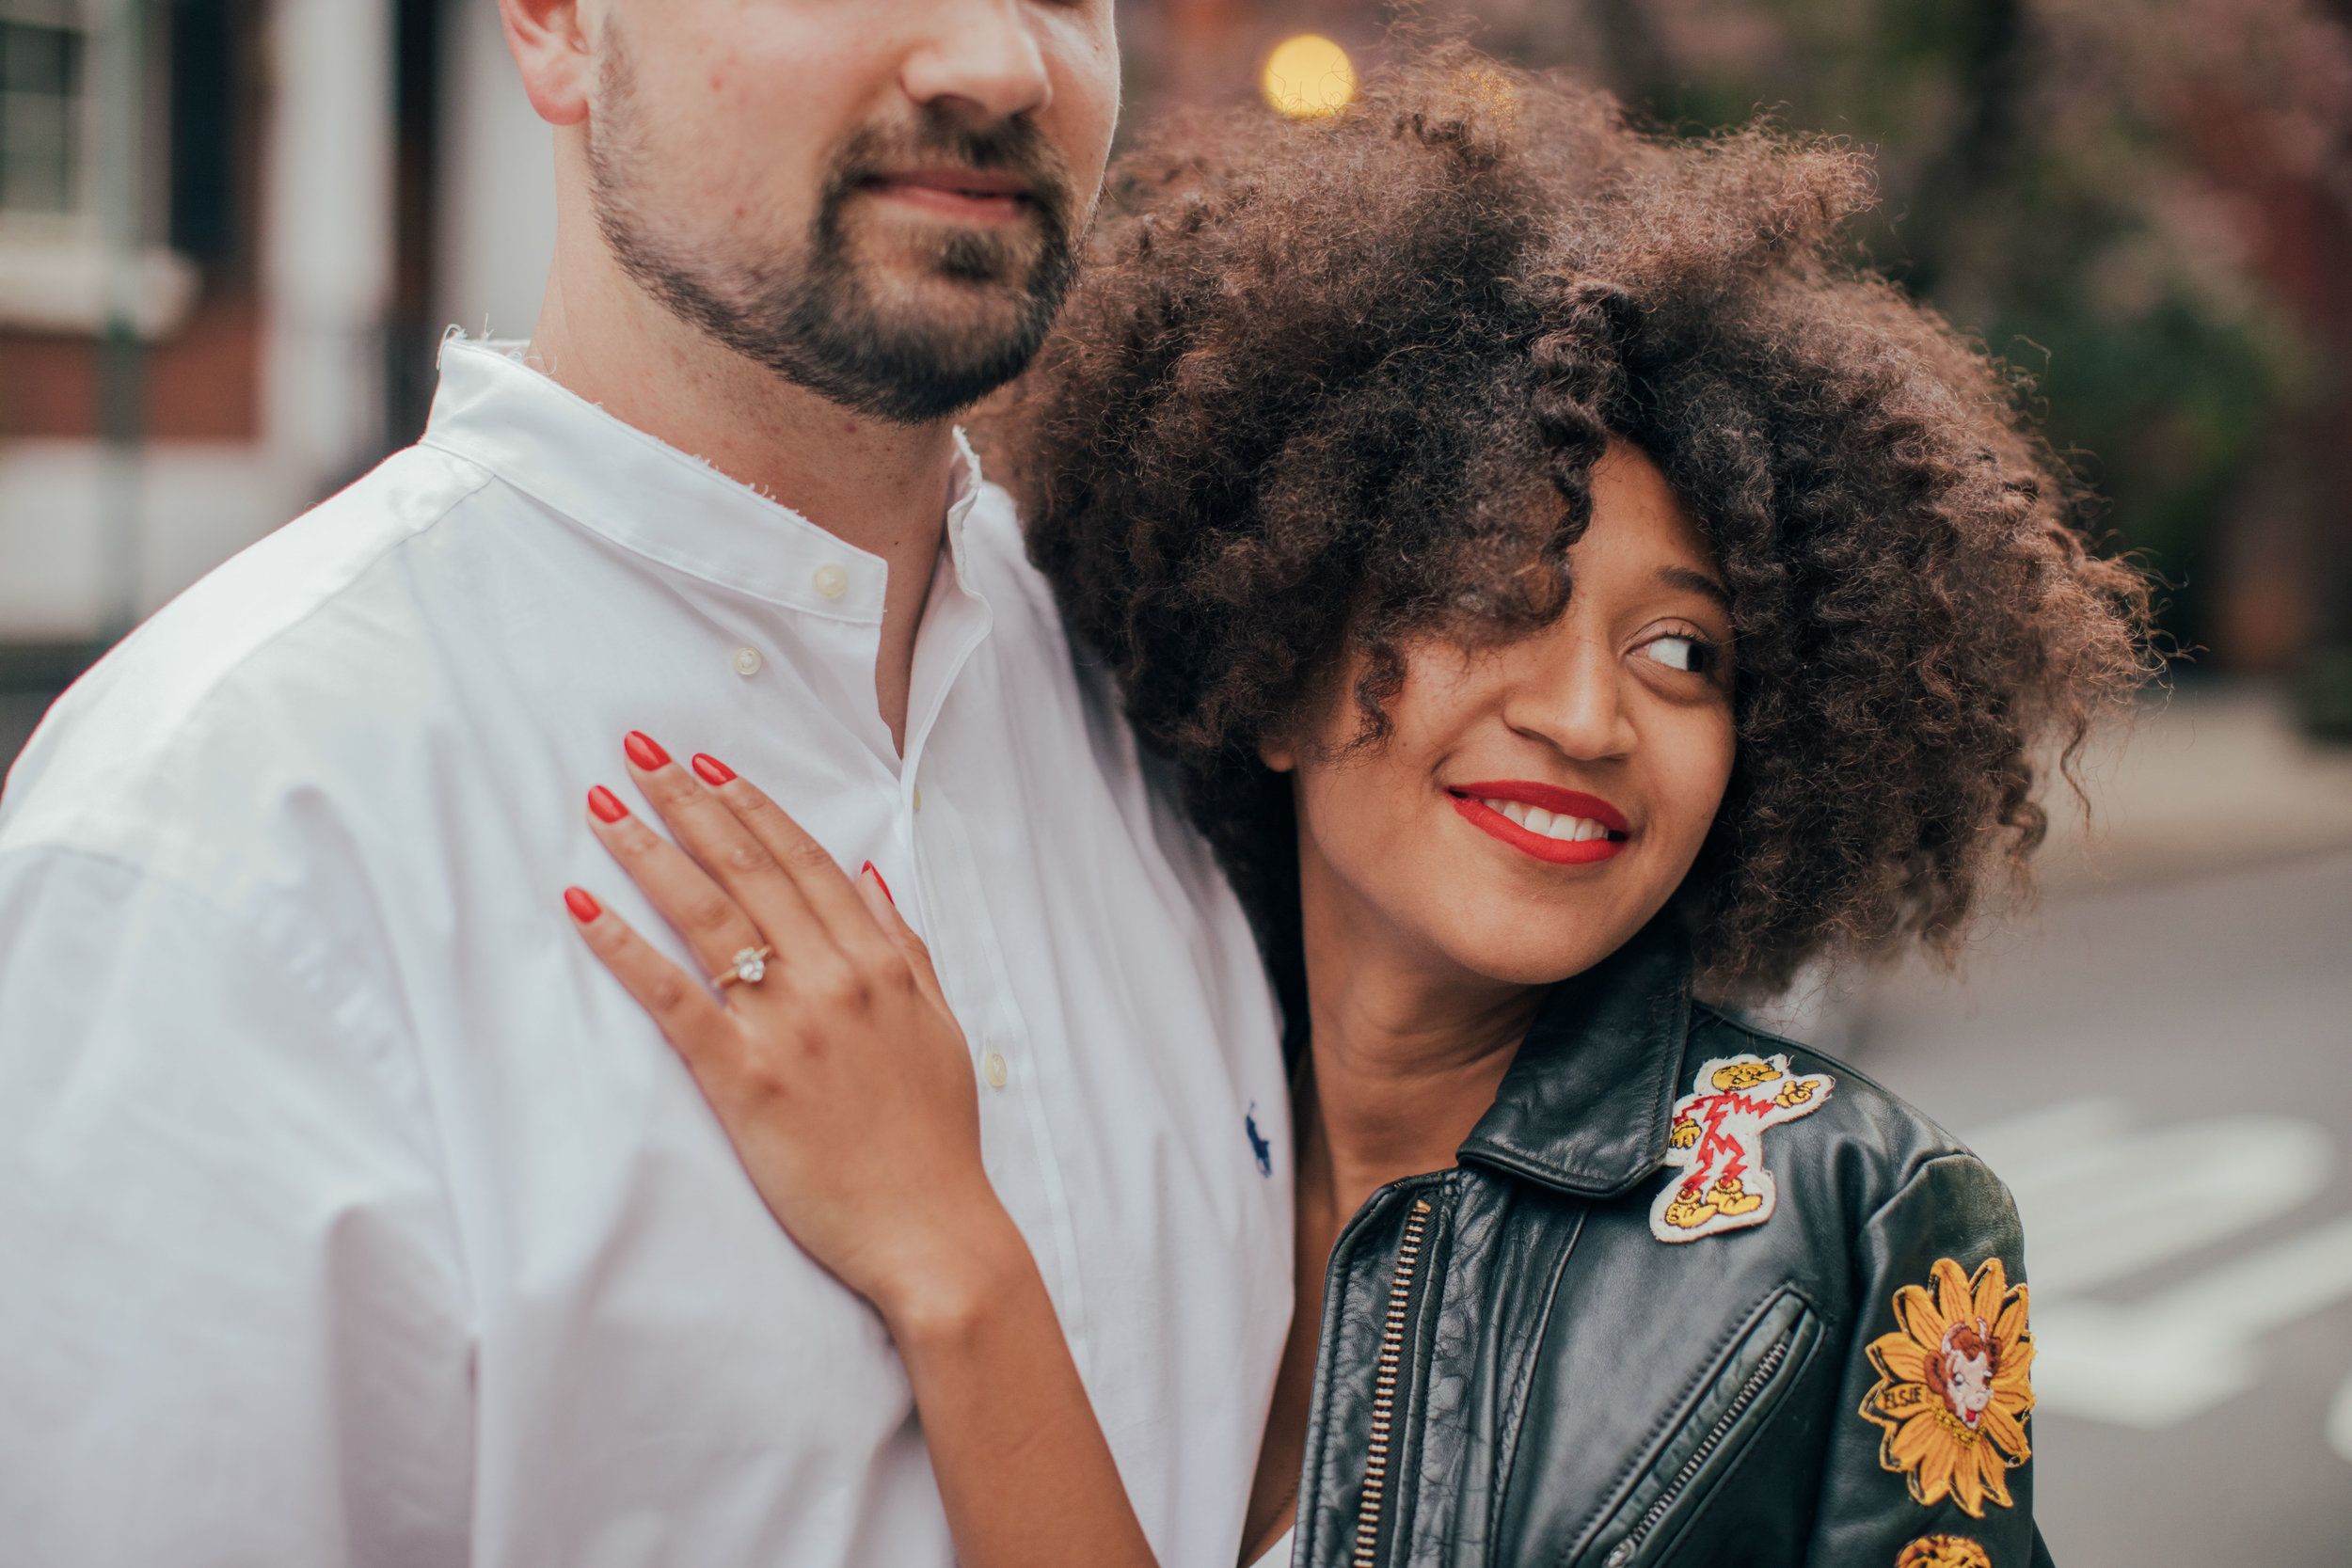 west_village_nyc_engagement (8 of 23).jpg